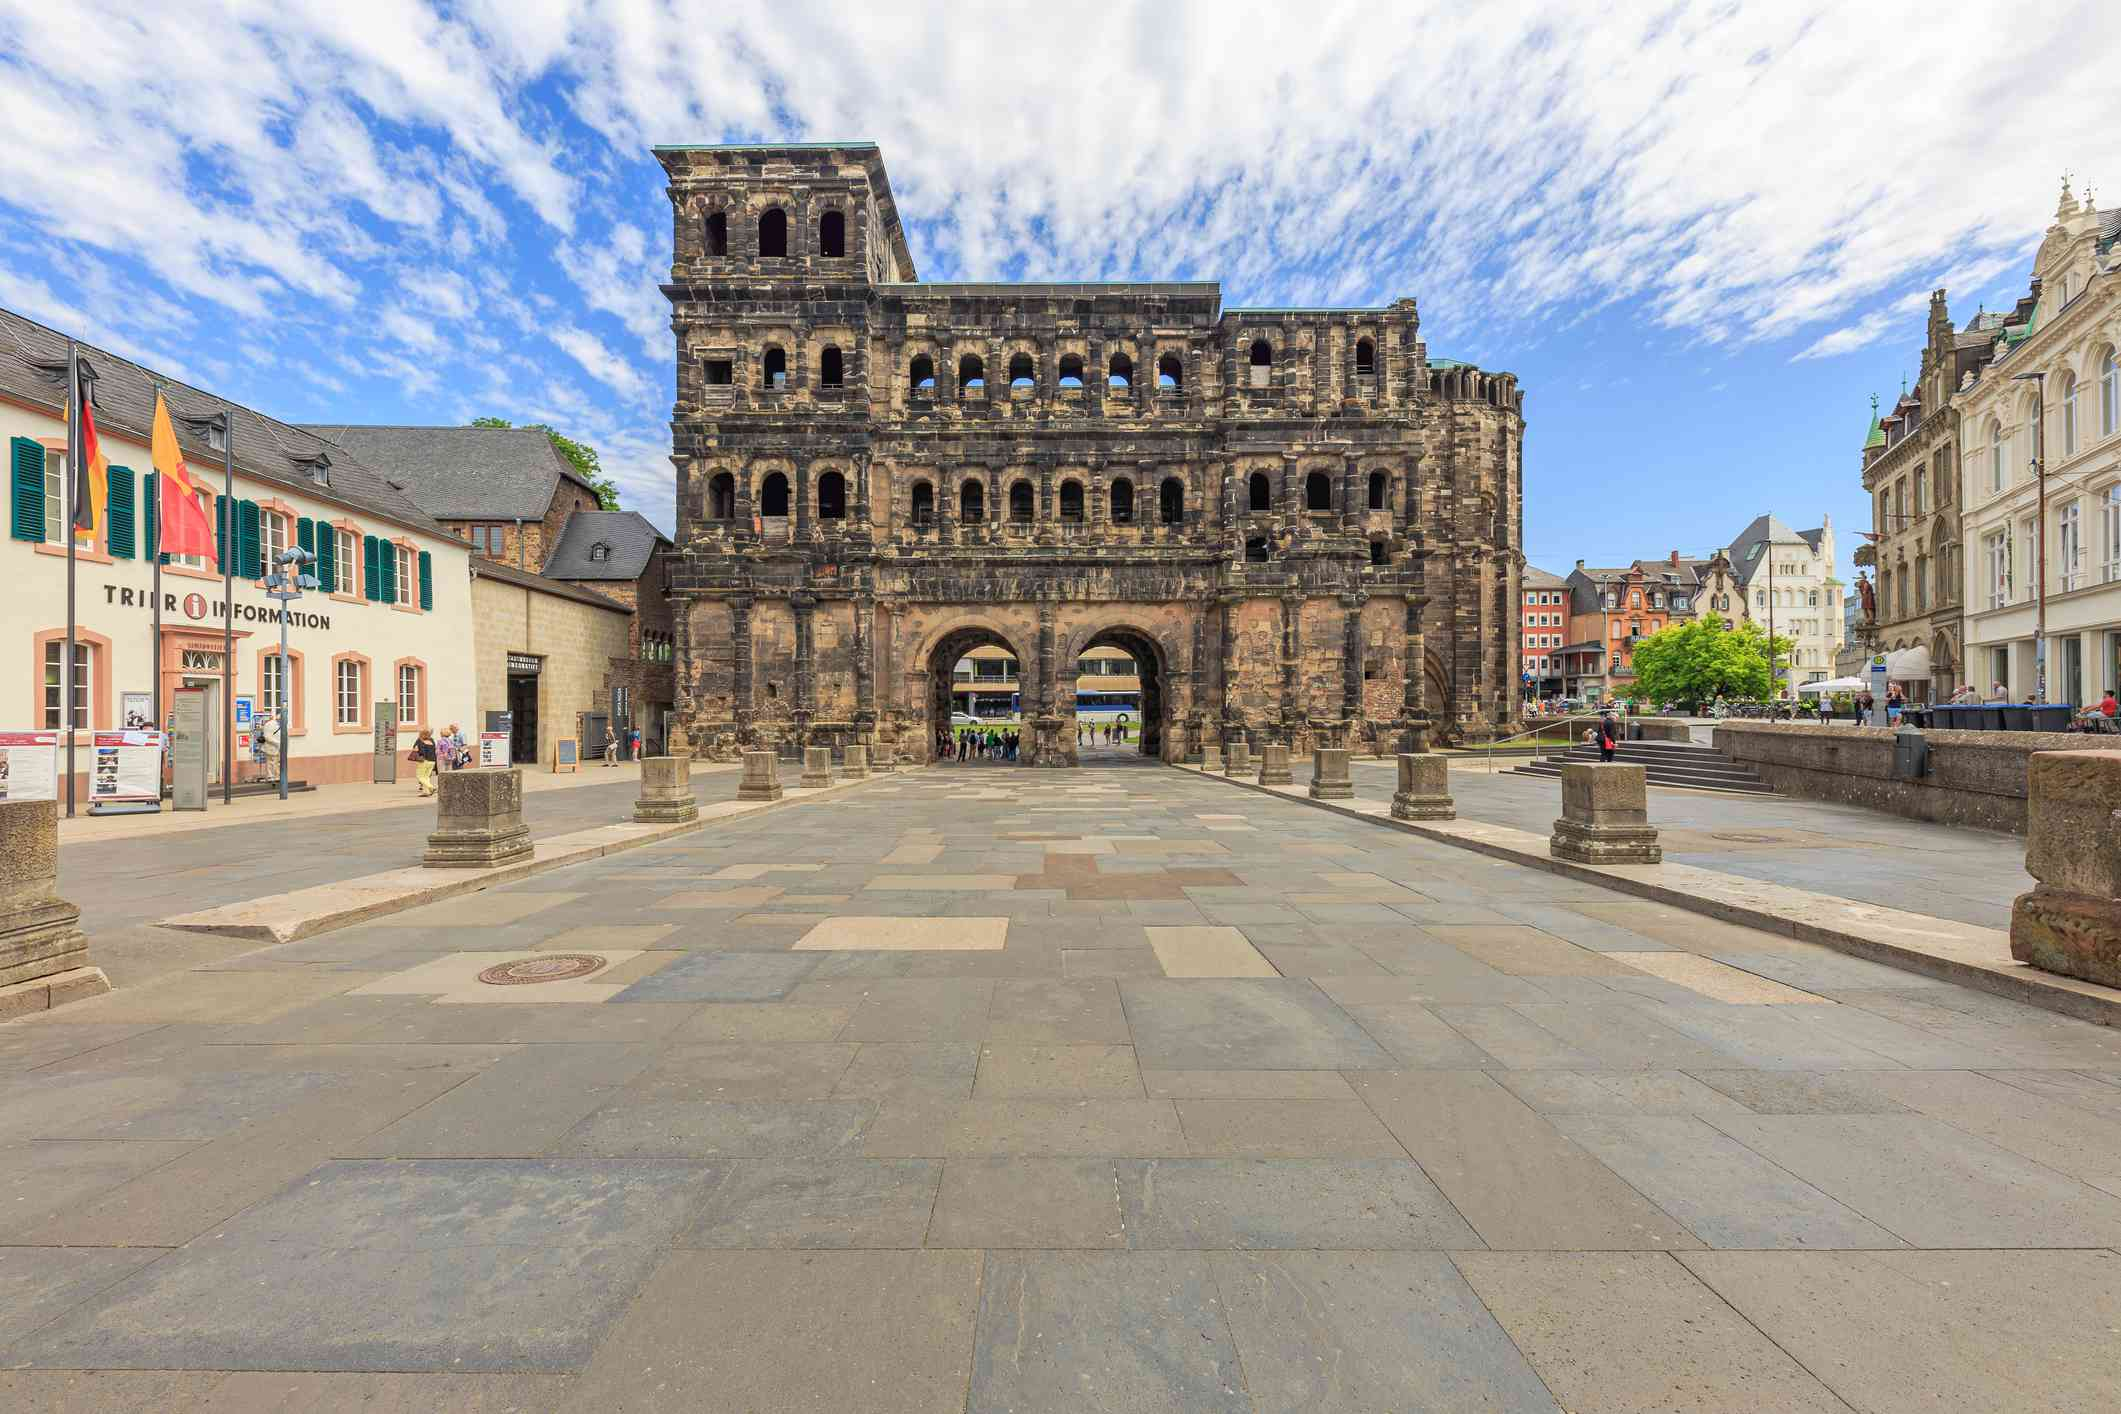 View Of Historical Building Porta Nigra Against Cloudy Sky